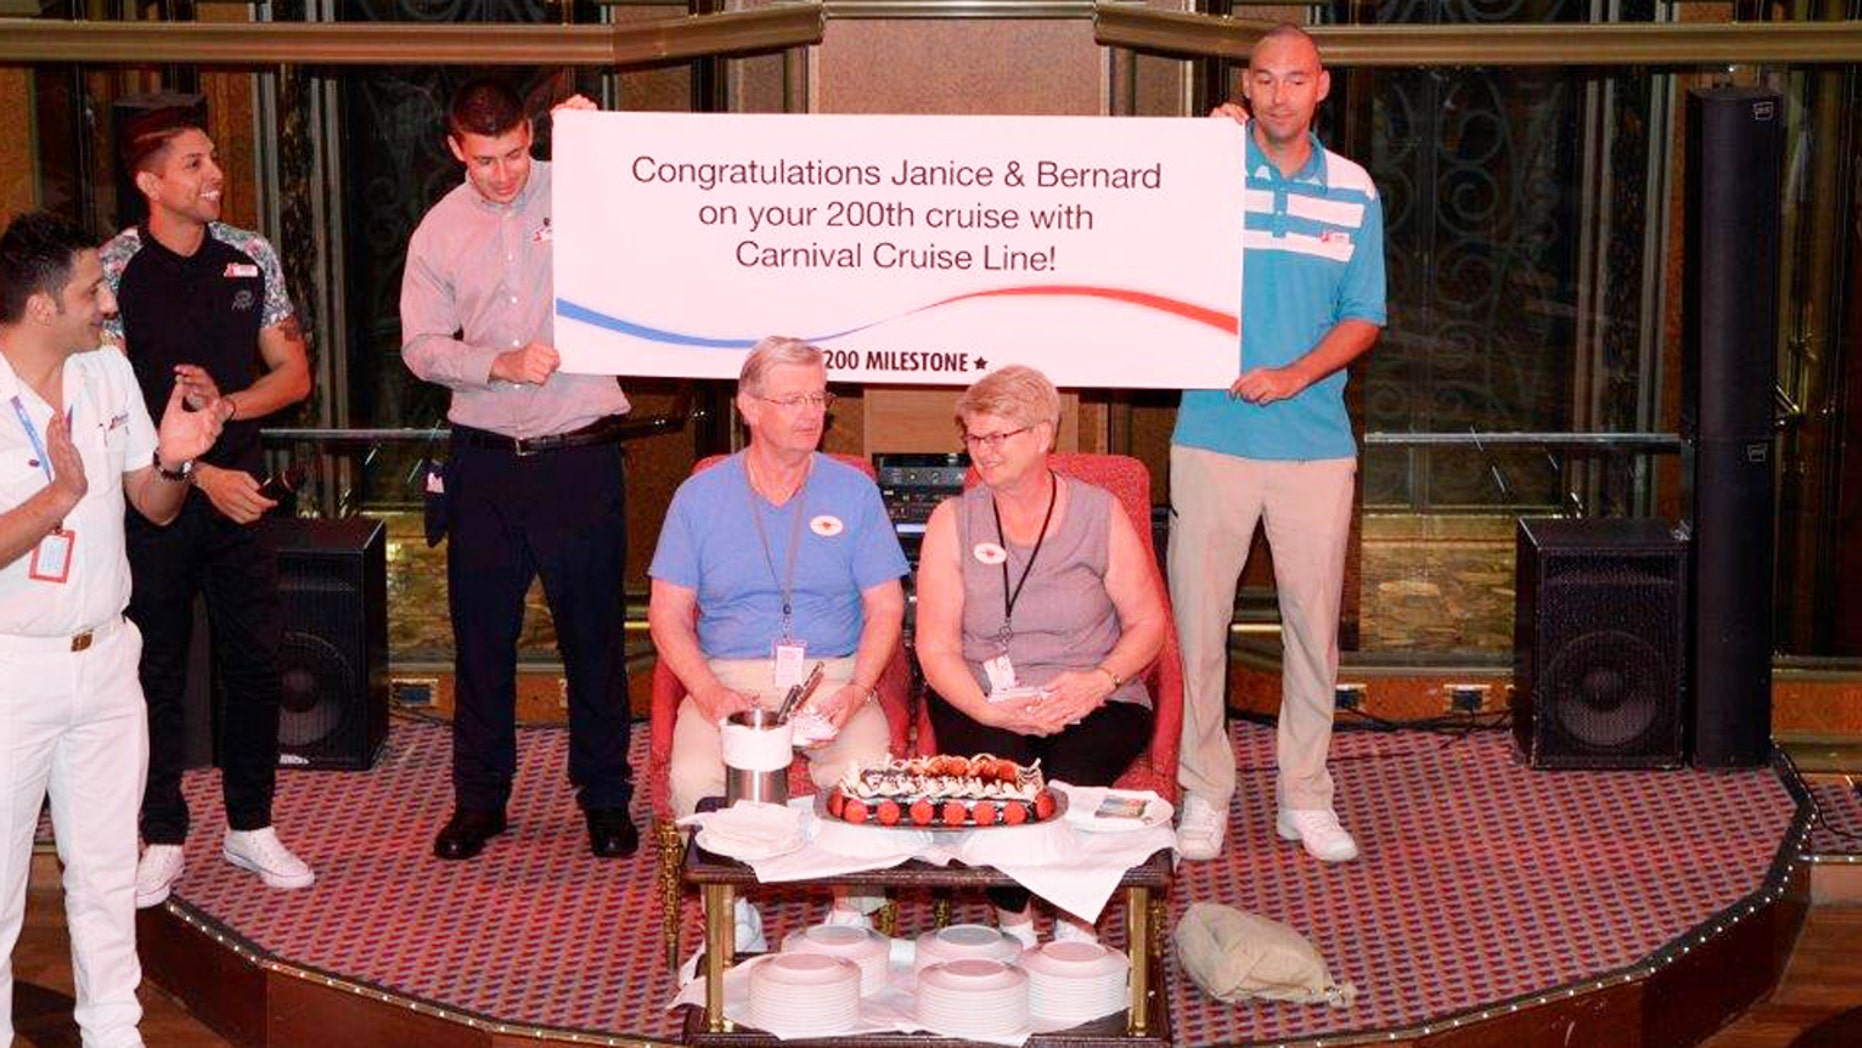 Bernard and Janice Caffary are welcomed aboard their 200th Carnival cruise sailing.